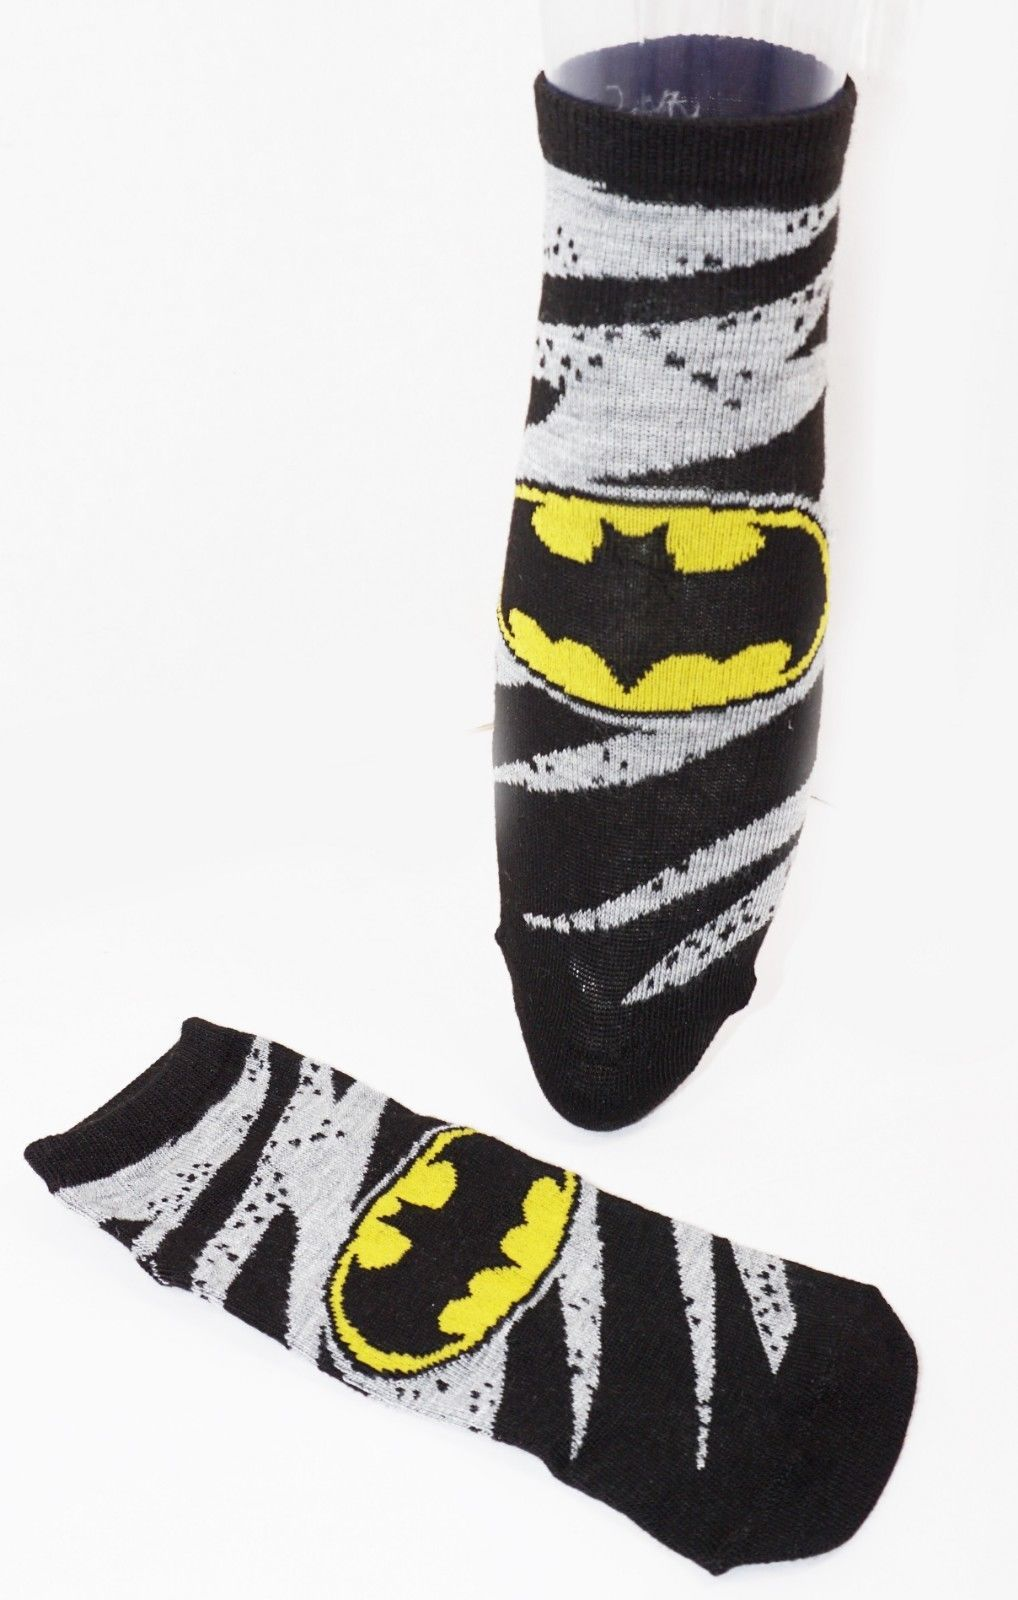 DC COMICS 3 PACK 1 SET - LOW CUT SOCKS ADULT SHOE SZ 4-10 HYP 2017 STYLE #1